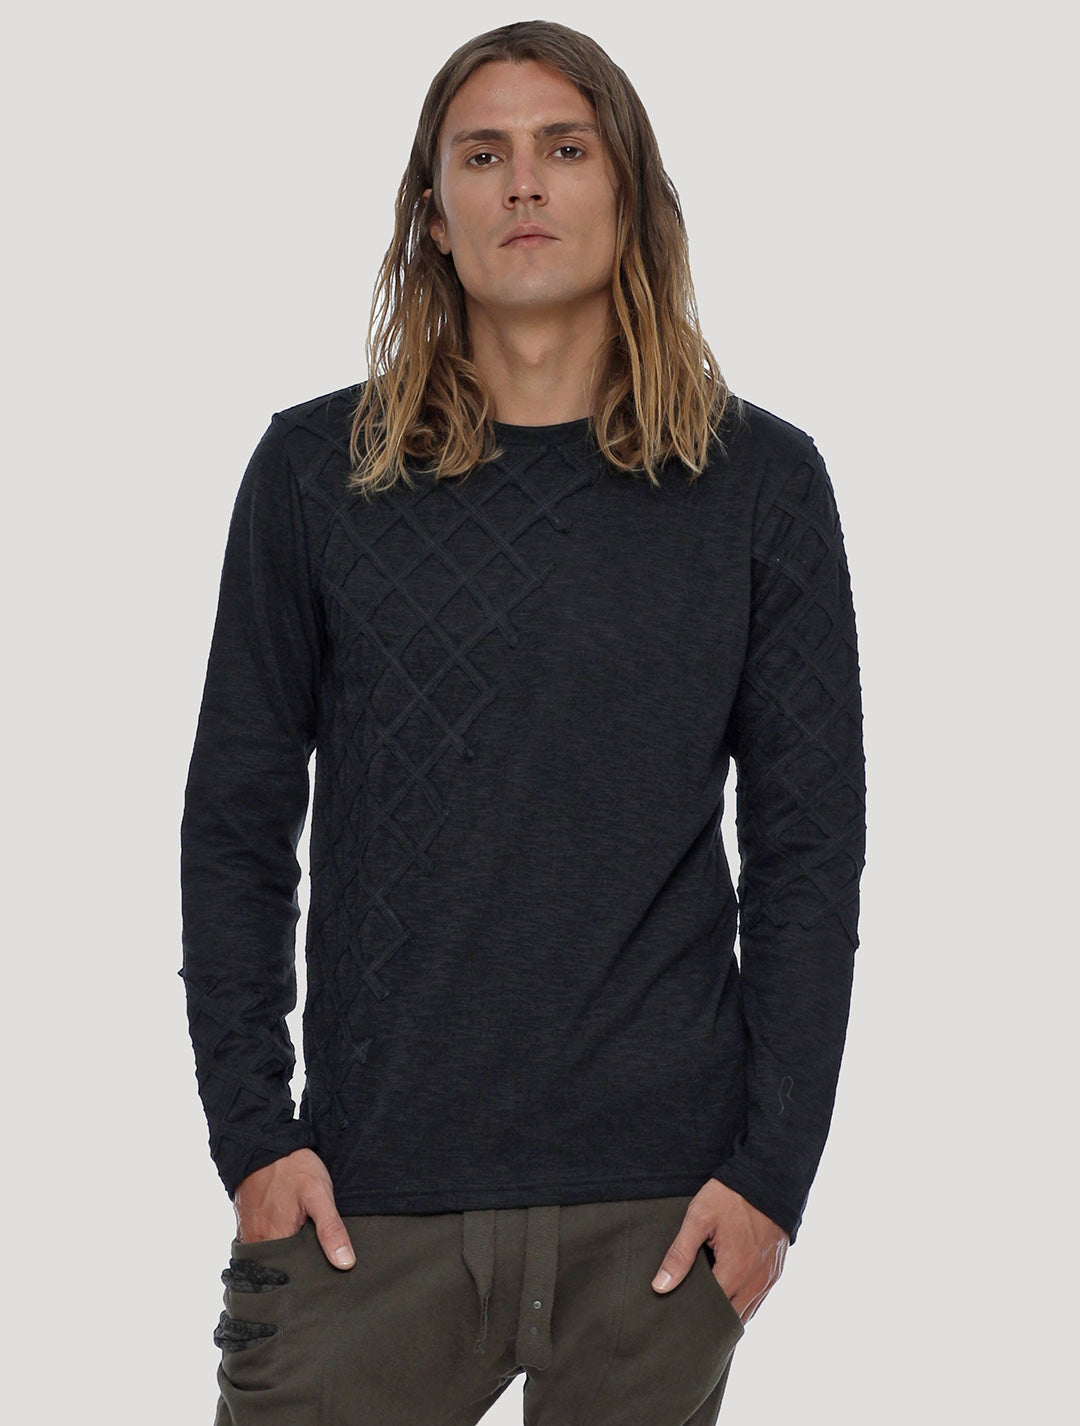 Gauda Sweater - Psylo Fashion